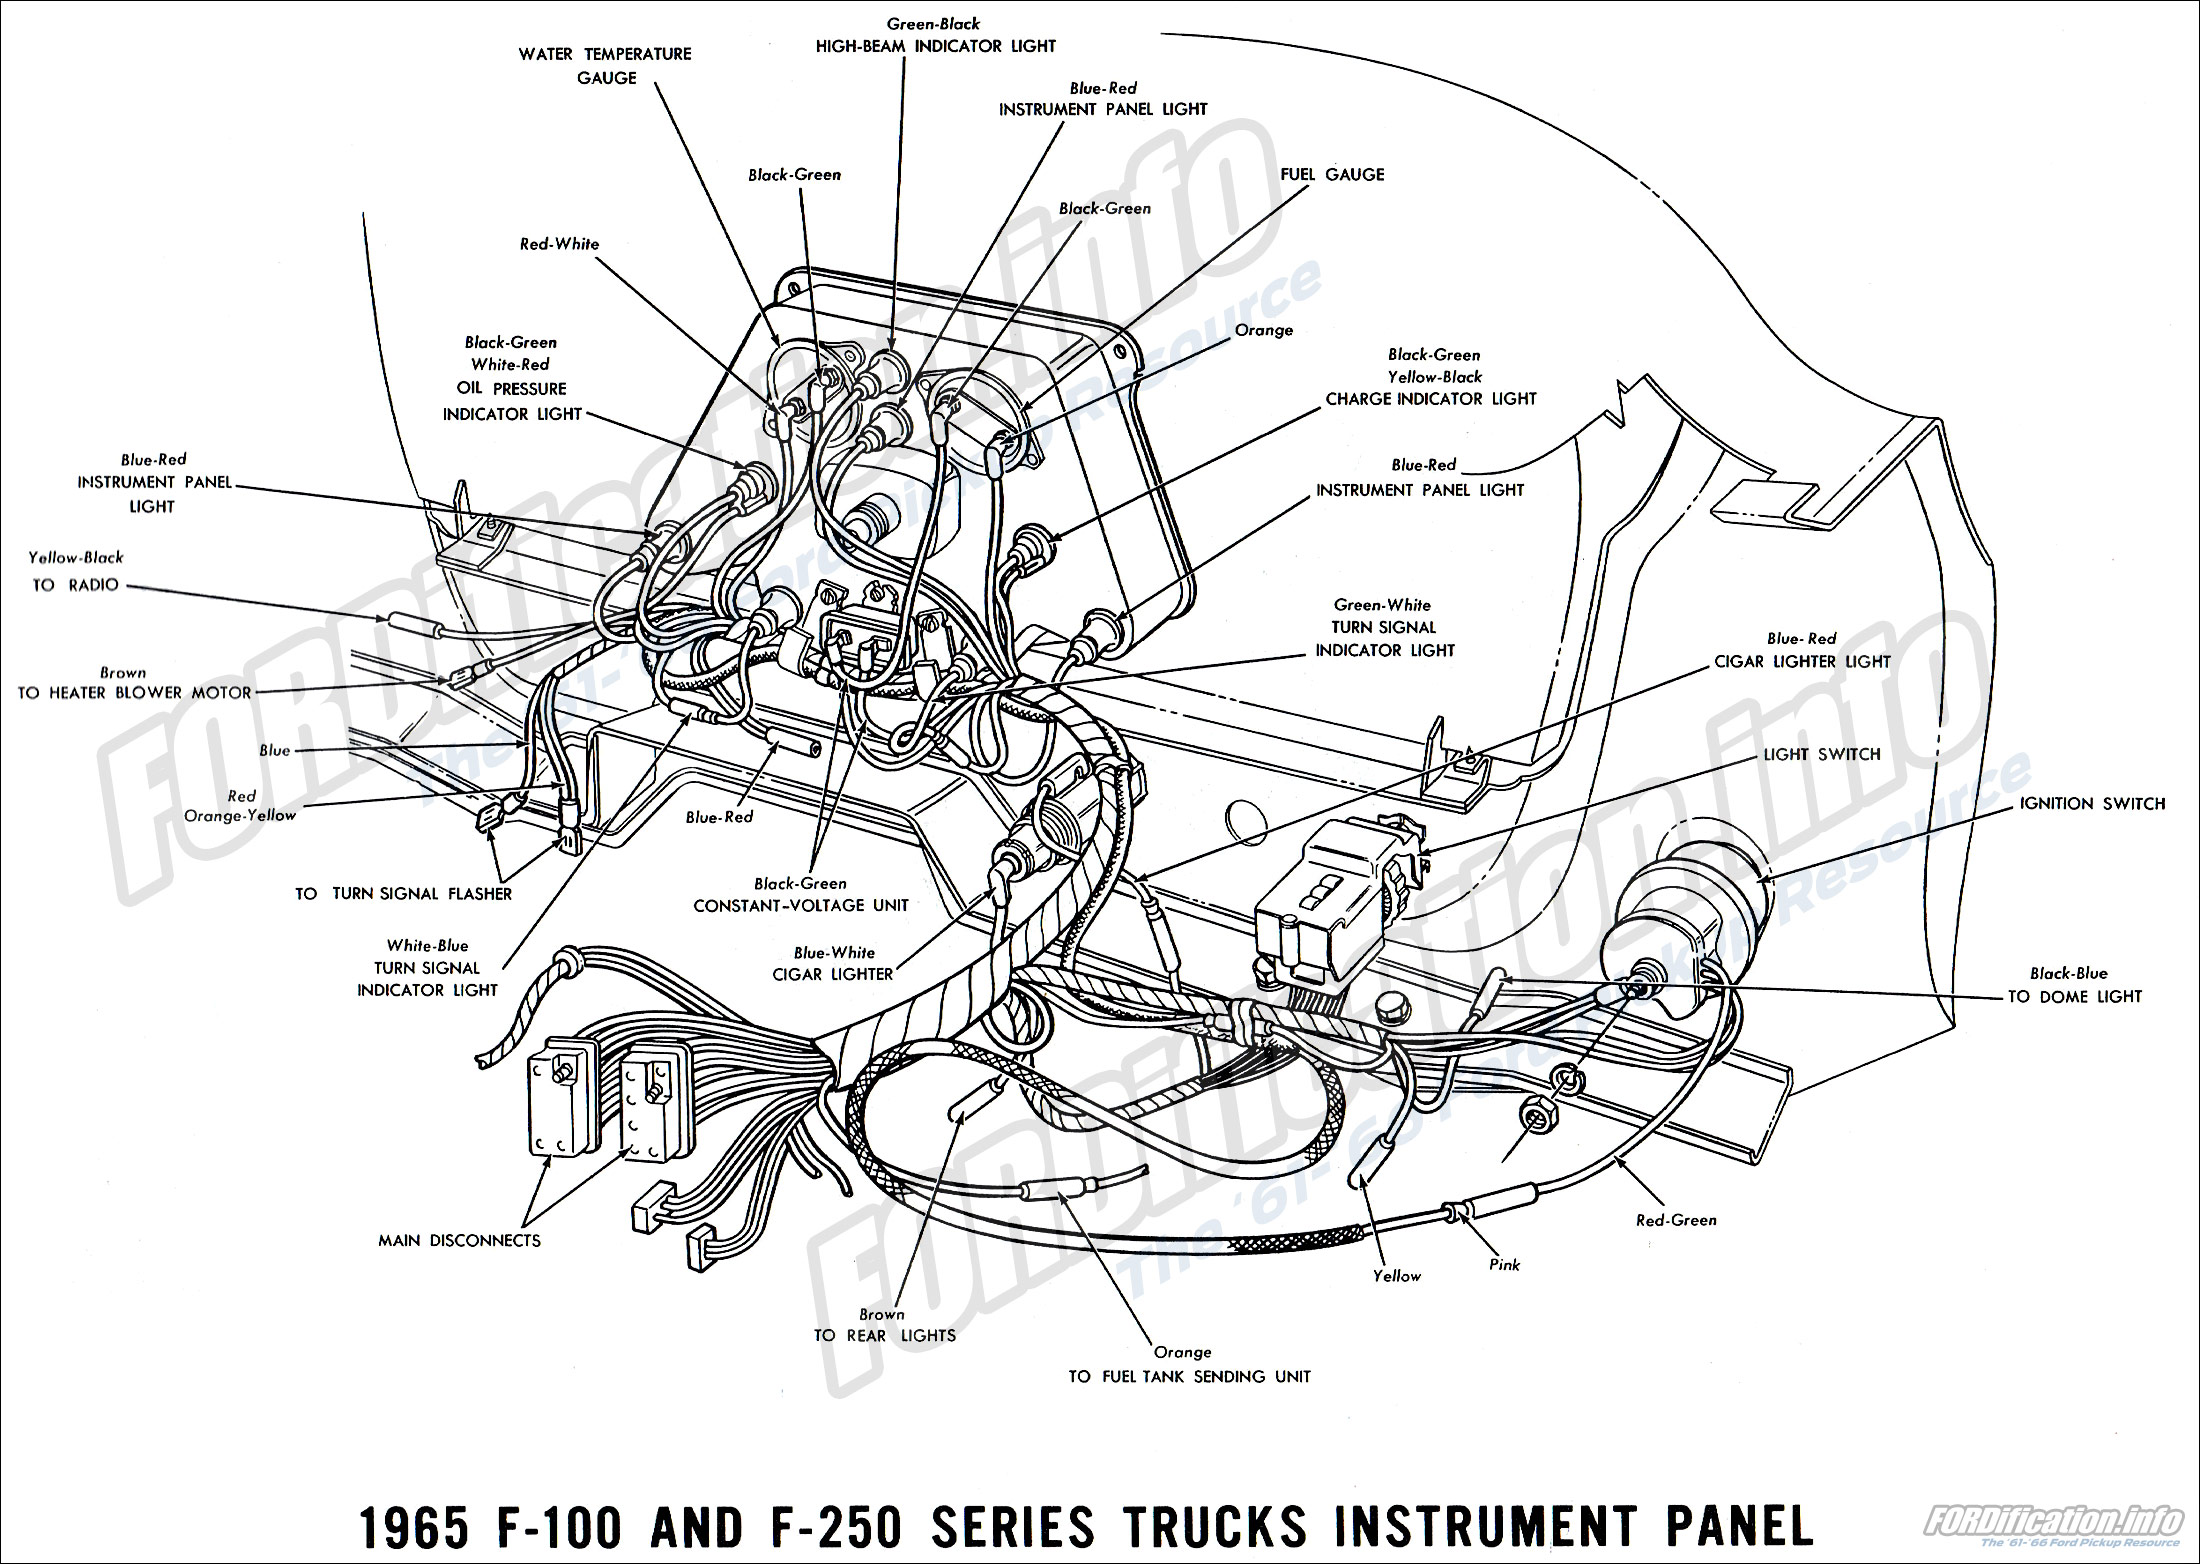 1965 ford wiring schematic - dolgular, Wiring diagram